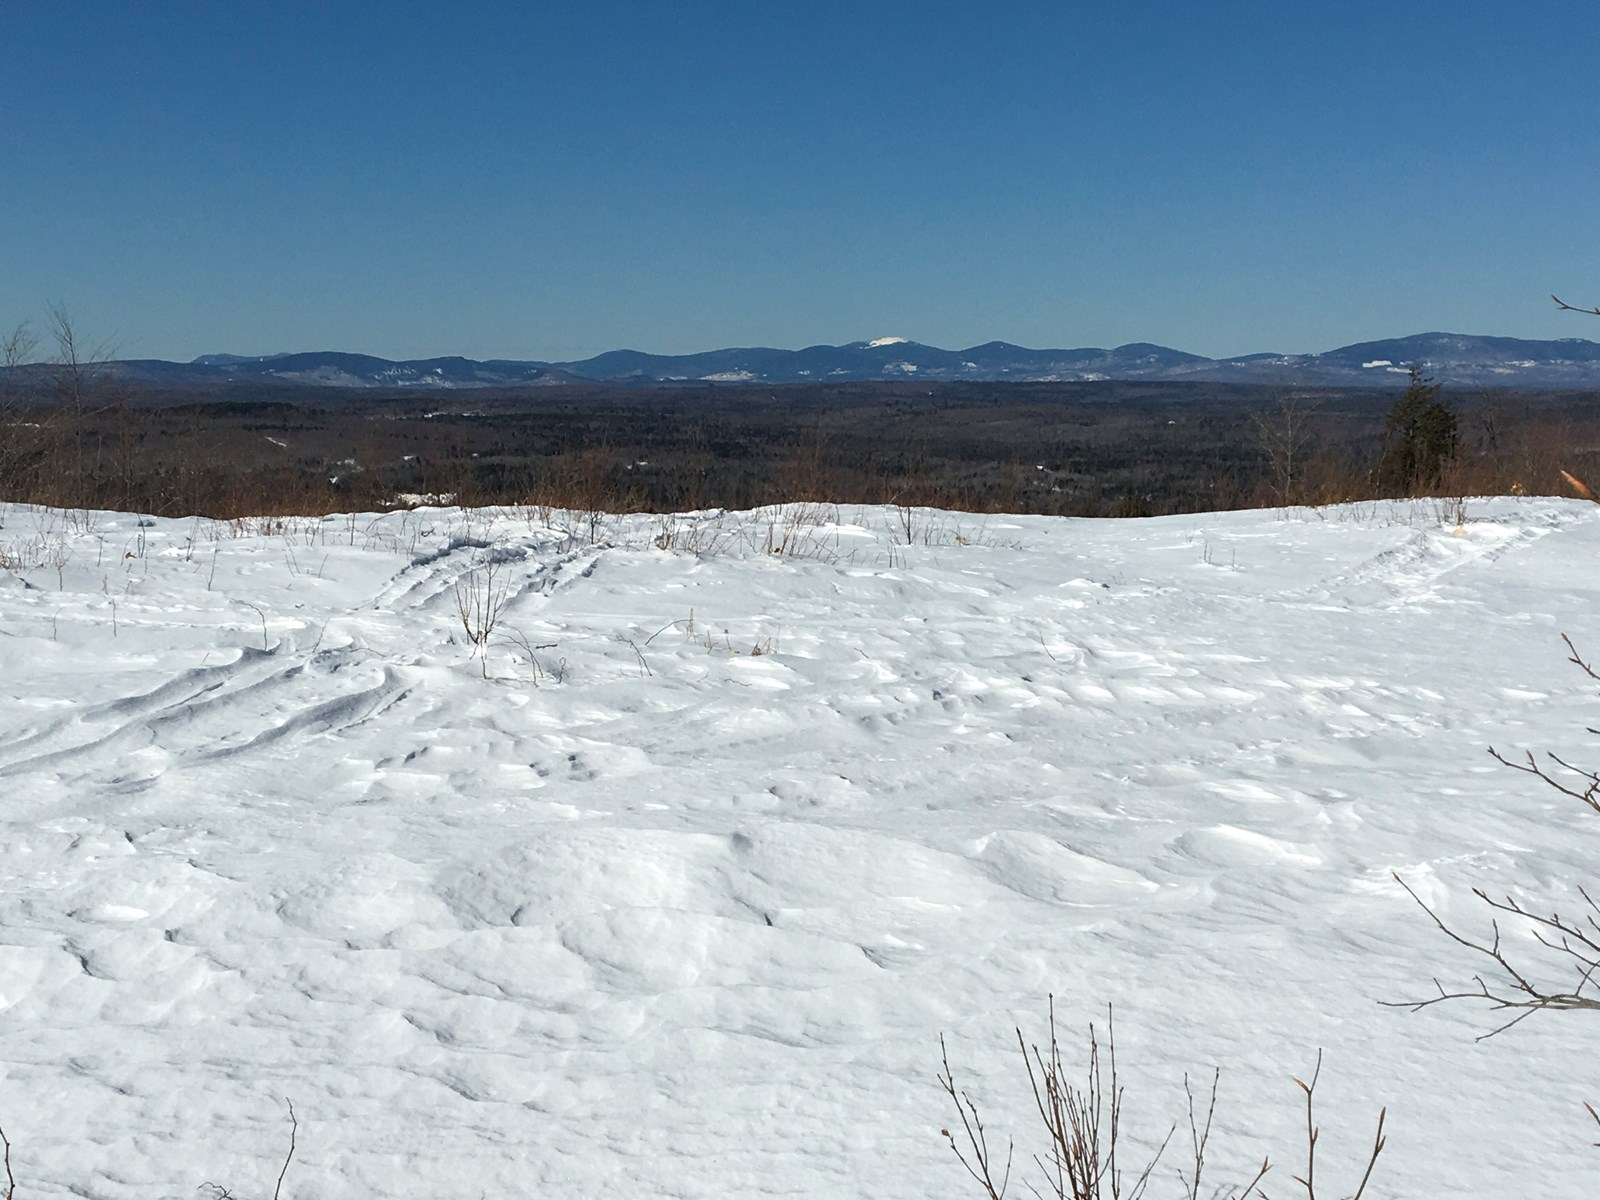 Acreage for Sale in Northern Maine